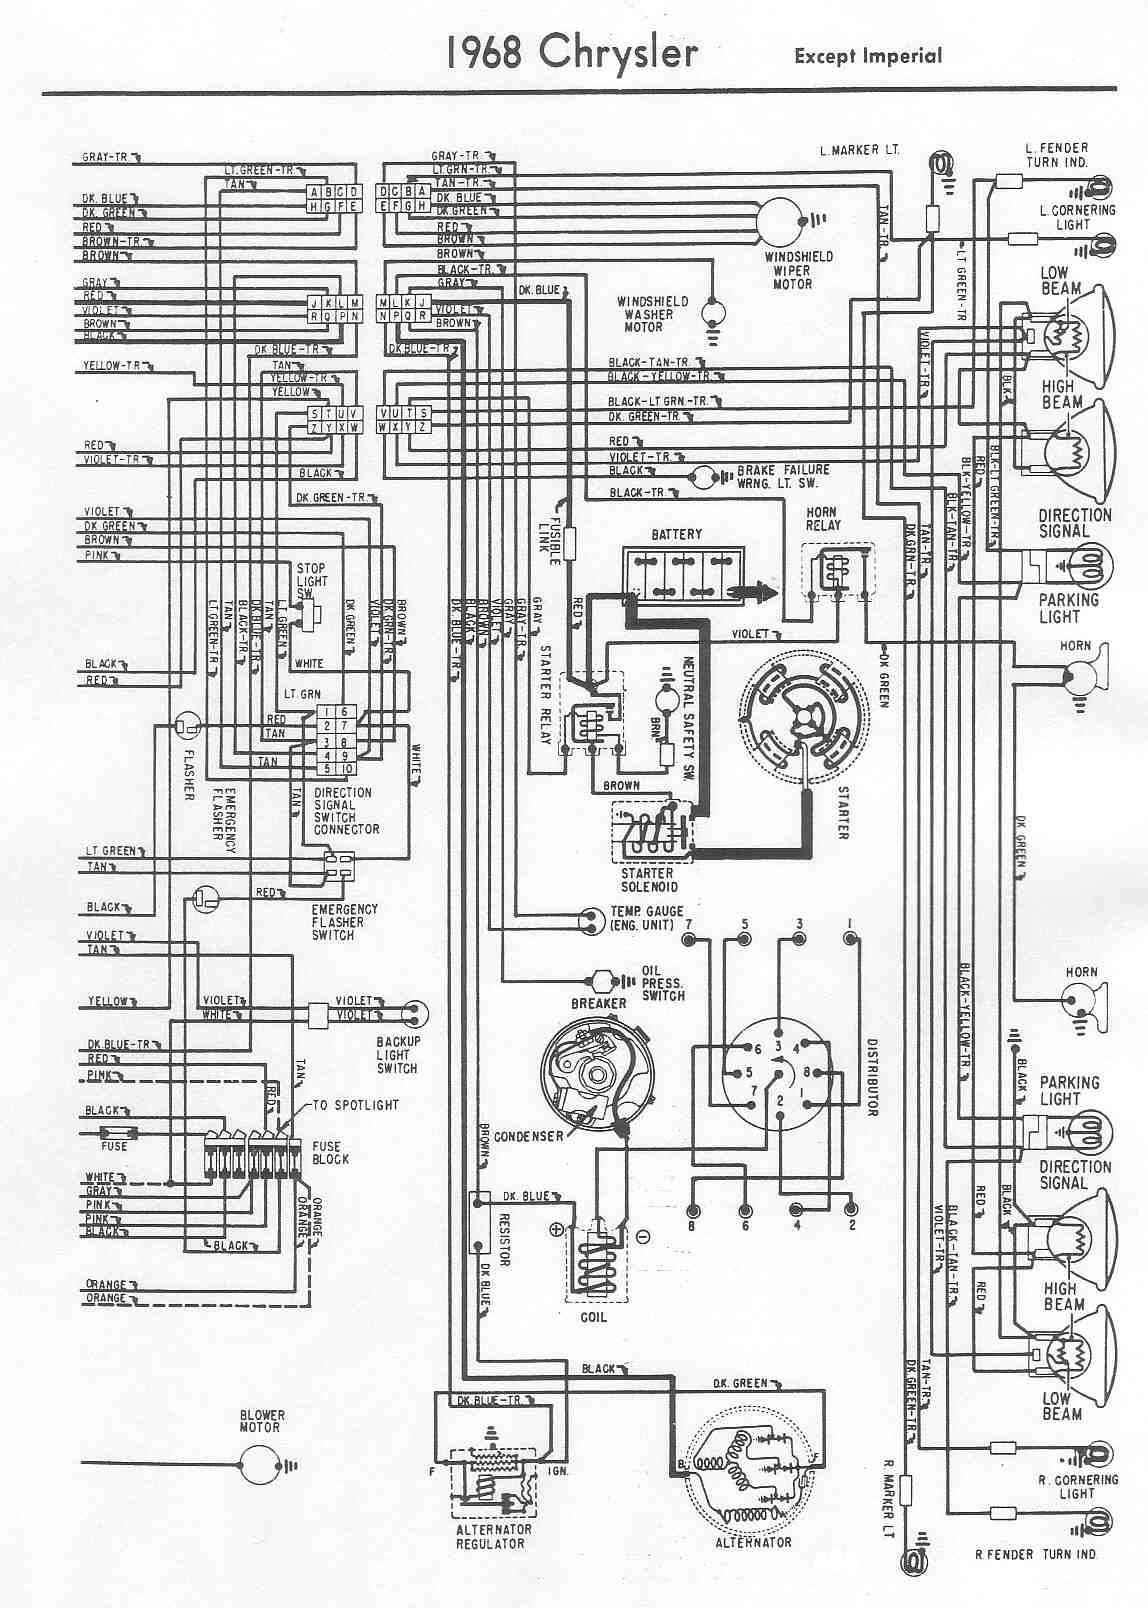 Chrysler 440 Wiring Diagram Free For You 2000 Town And Country 1965 Dodge Coronet Dash 300 Schematics Automotive Symbols